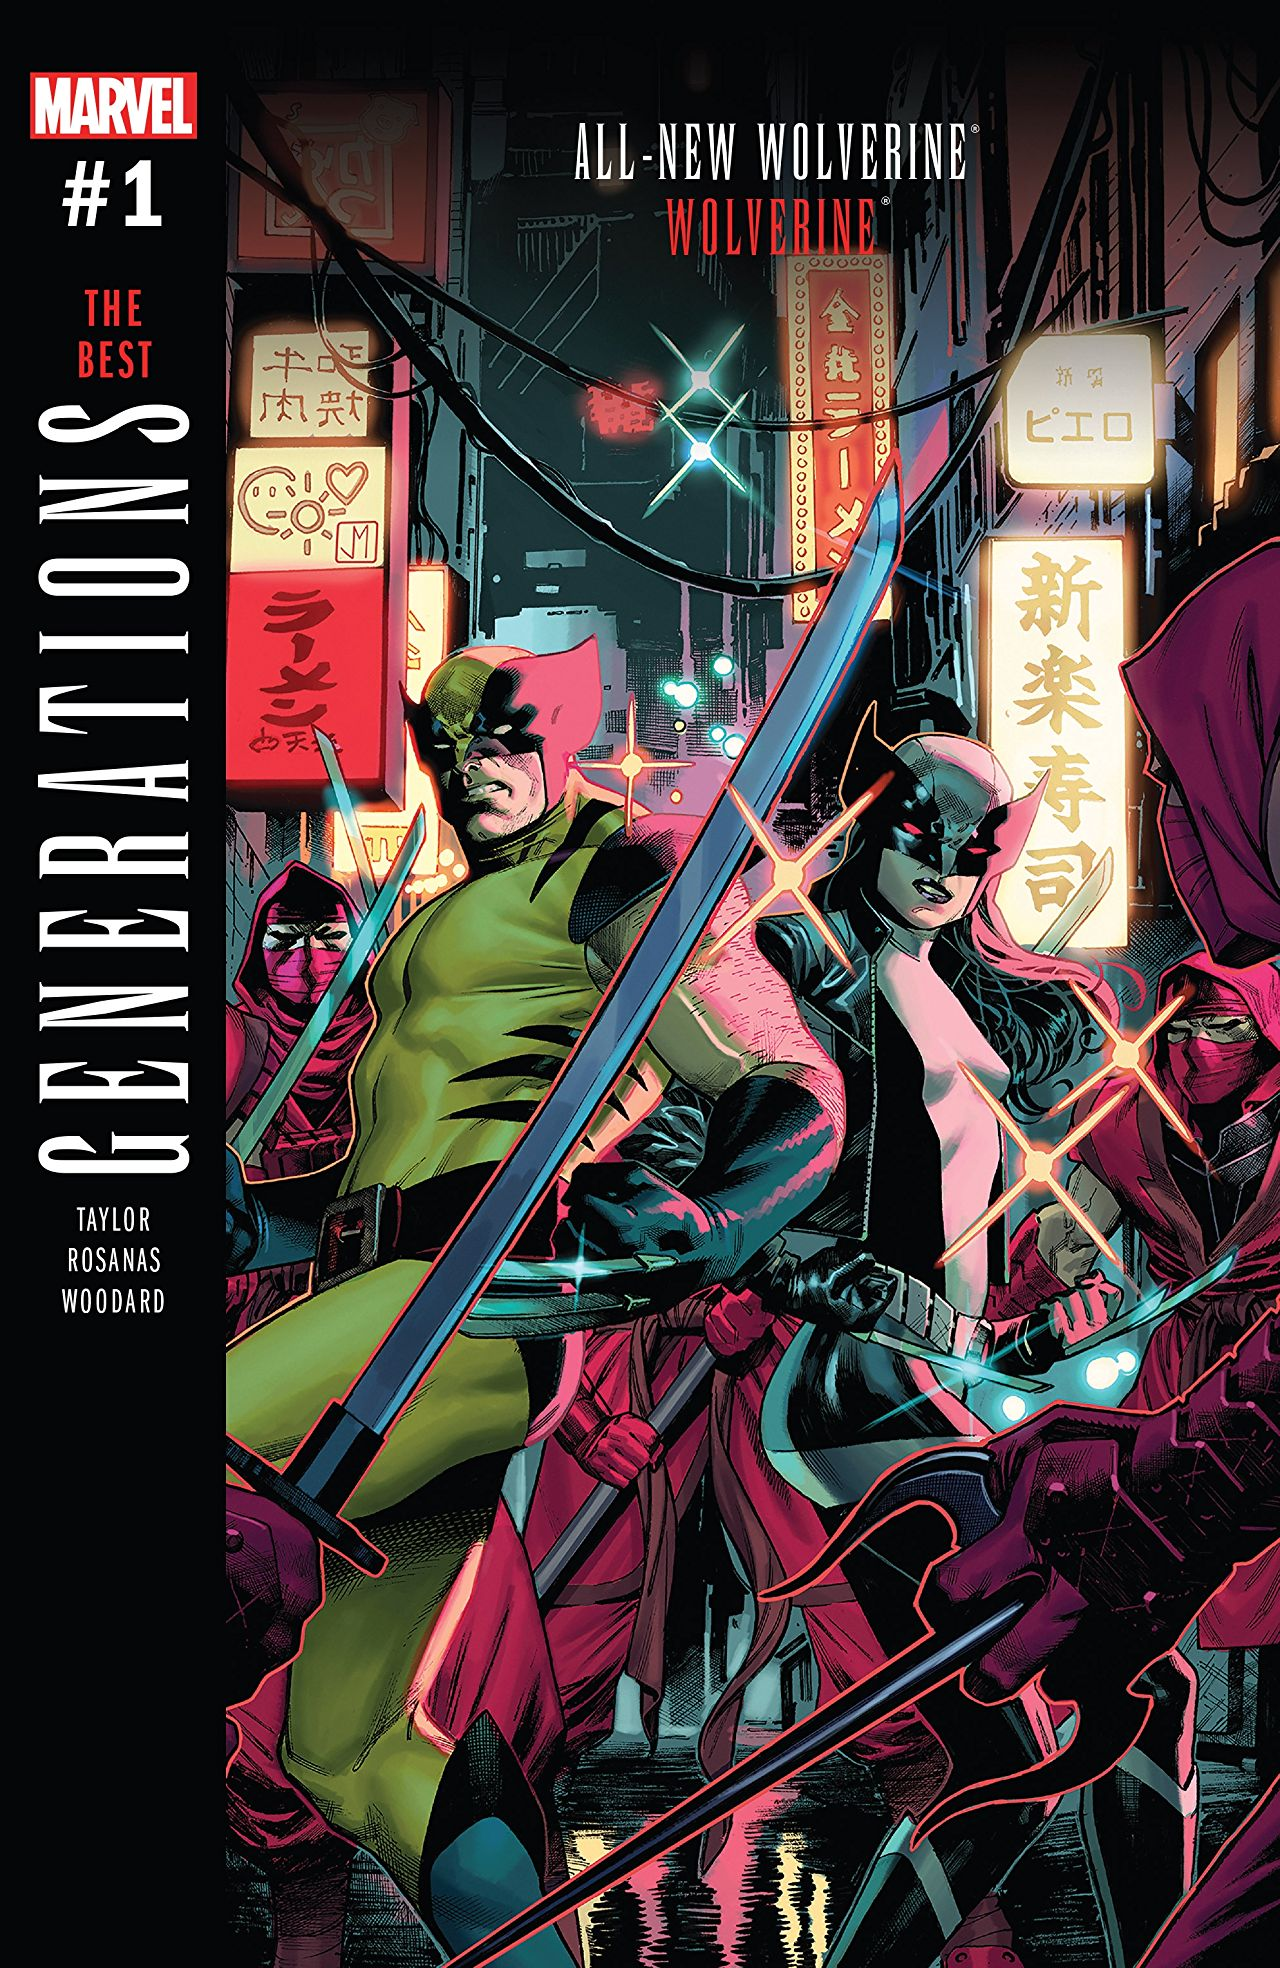 Generations: Wolverine & All-New Wolverine #1 Review